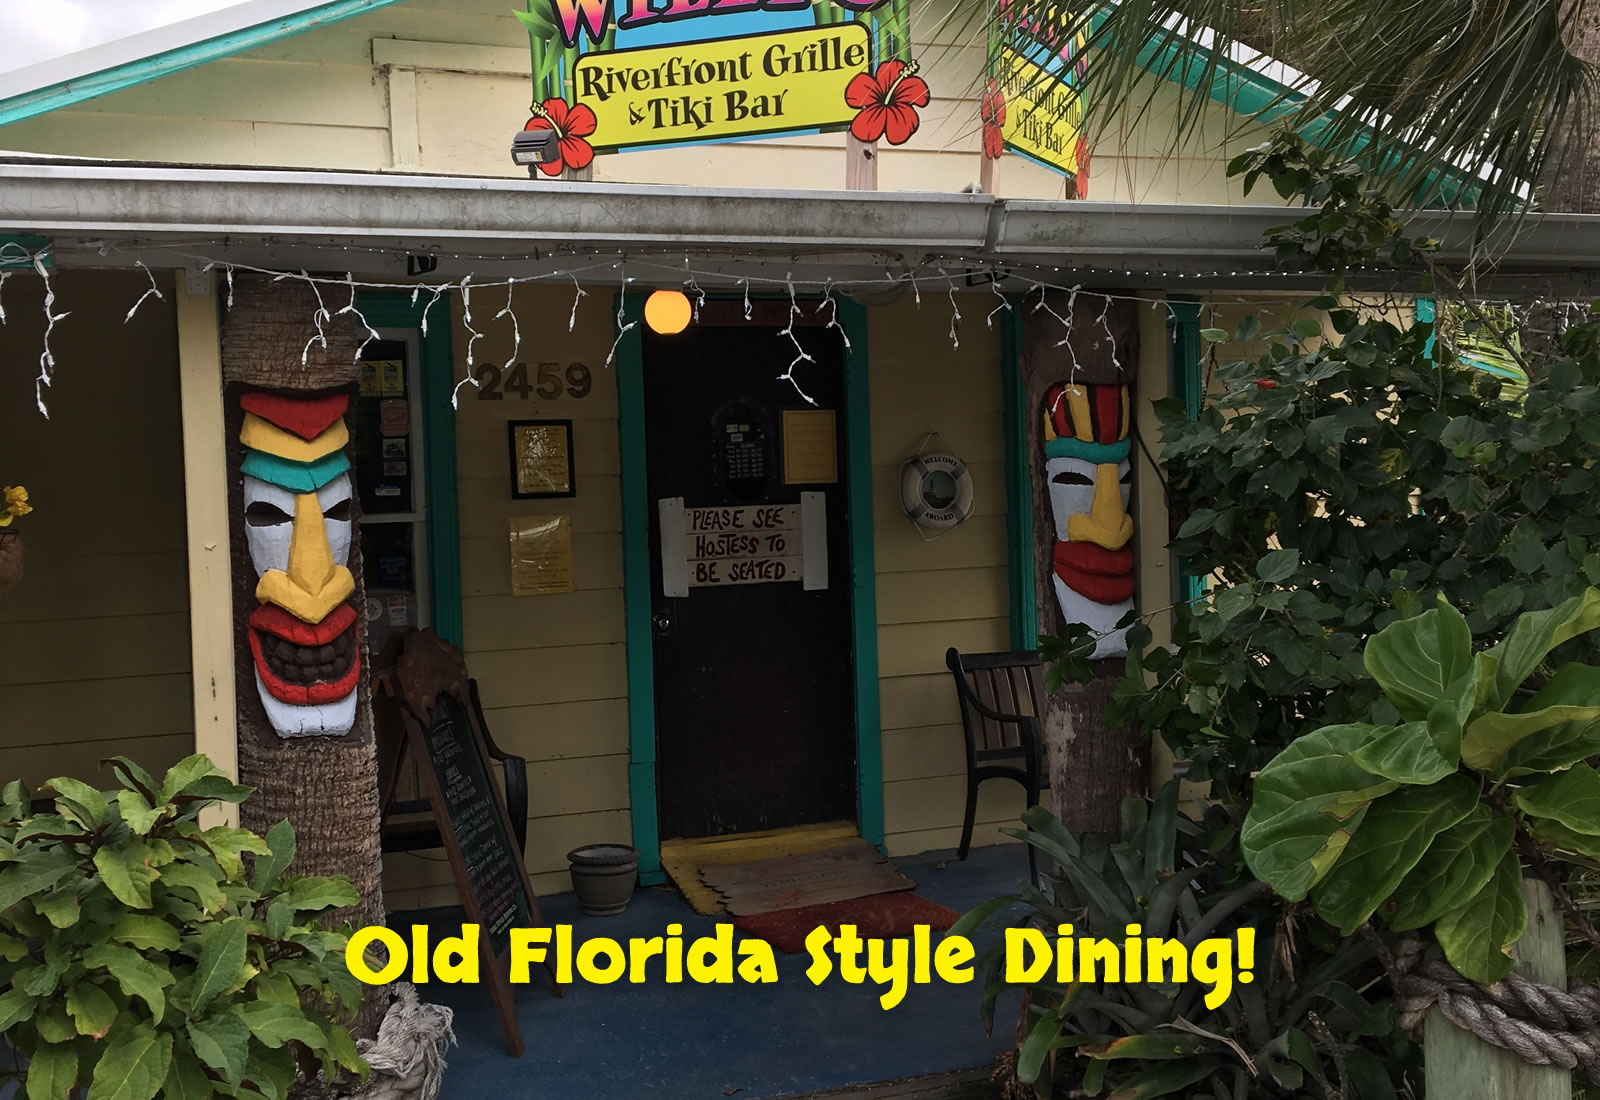 Old Florida style dining